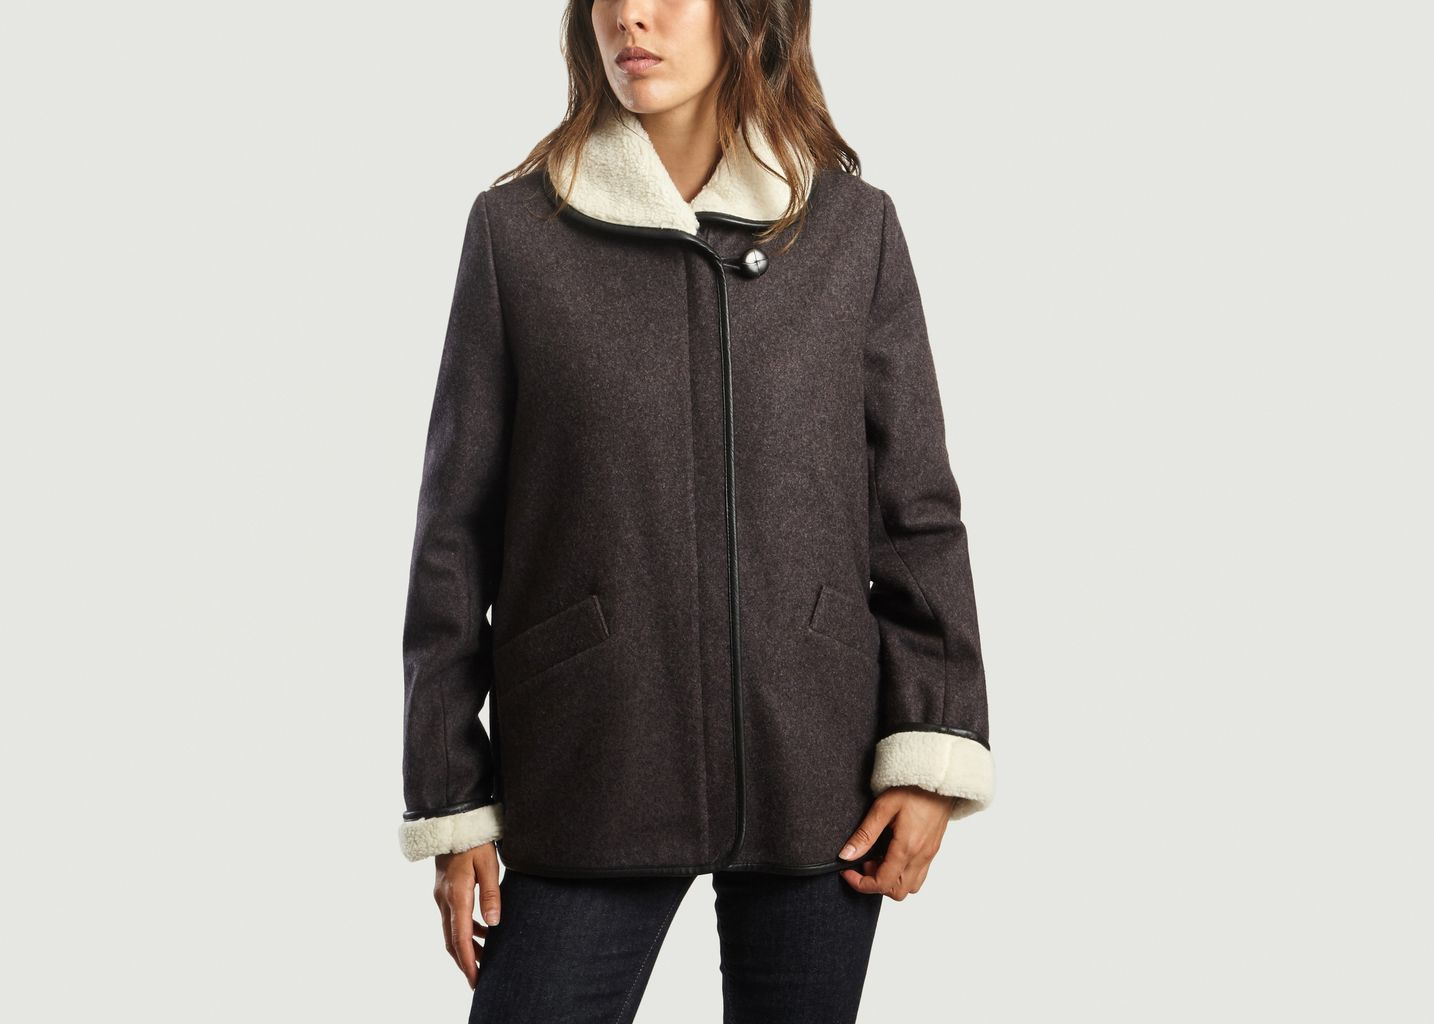 Manteau Court Paolo - Sessùn